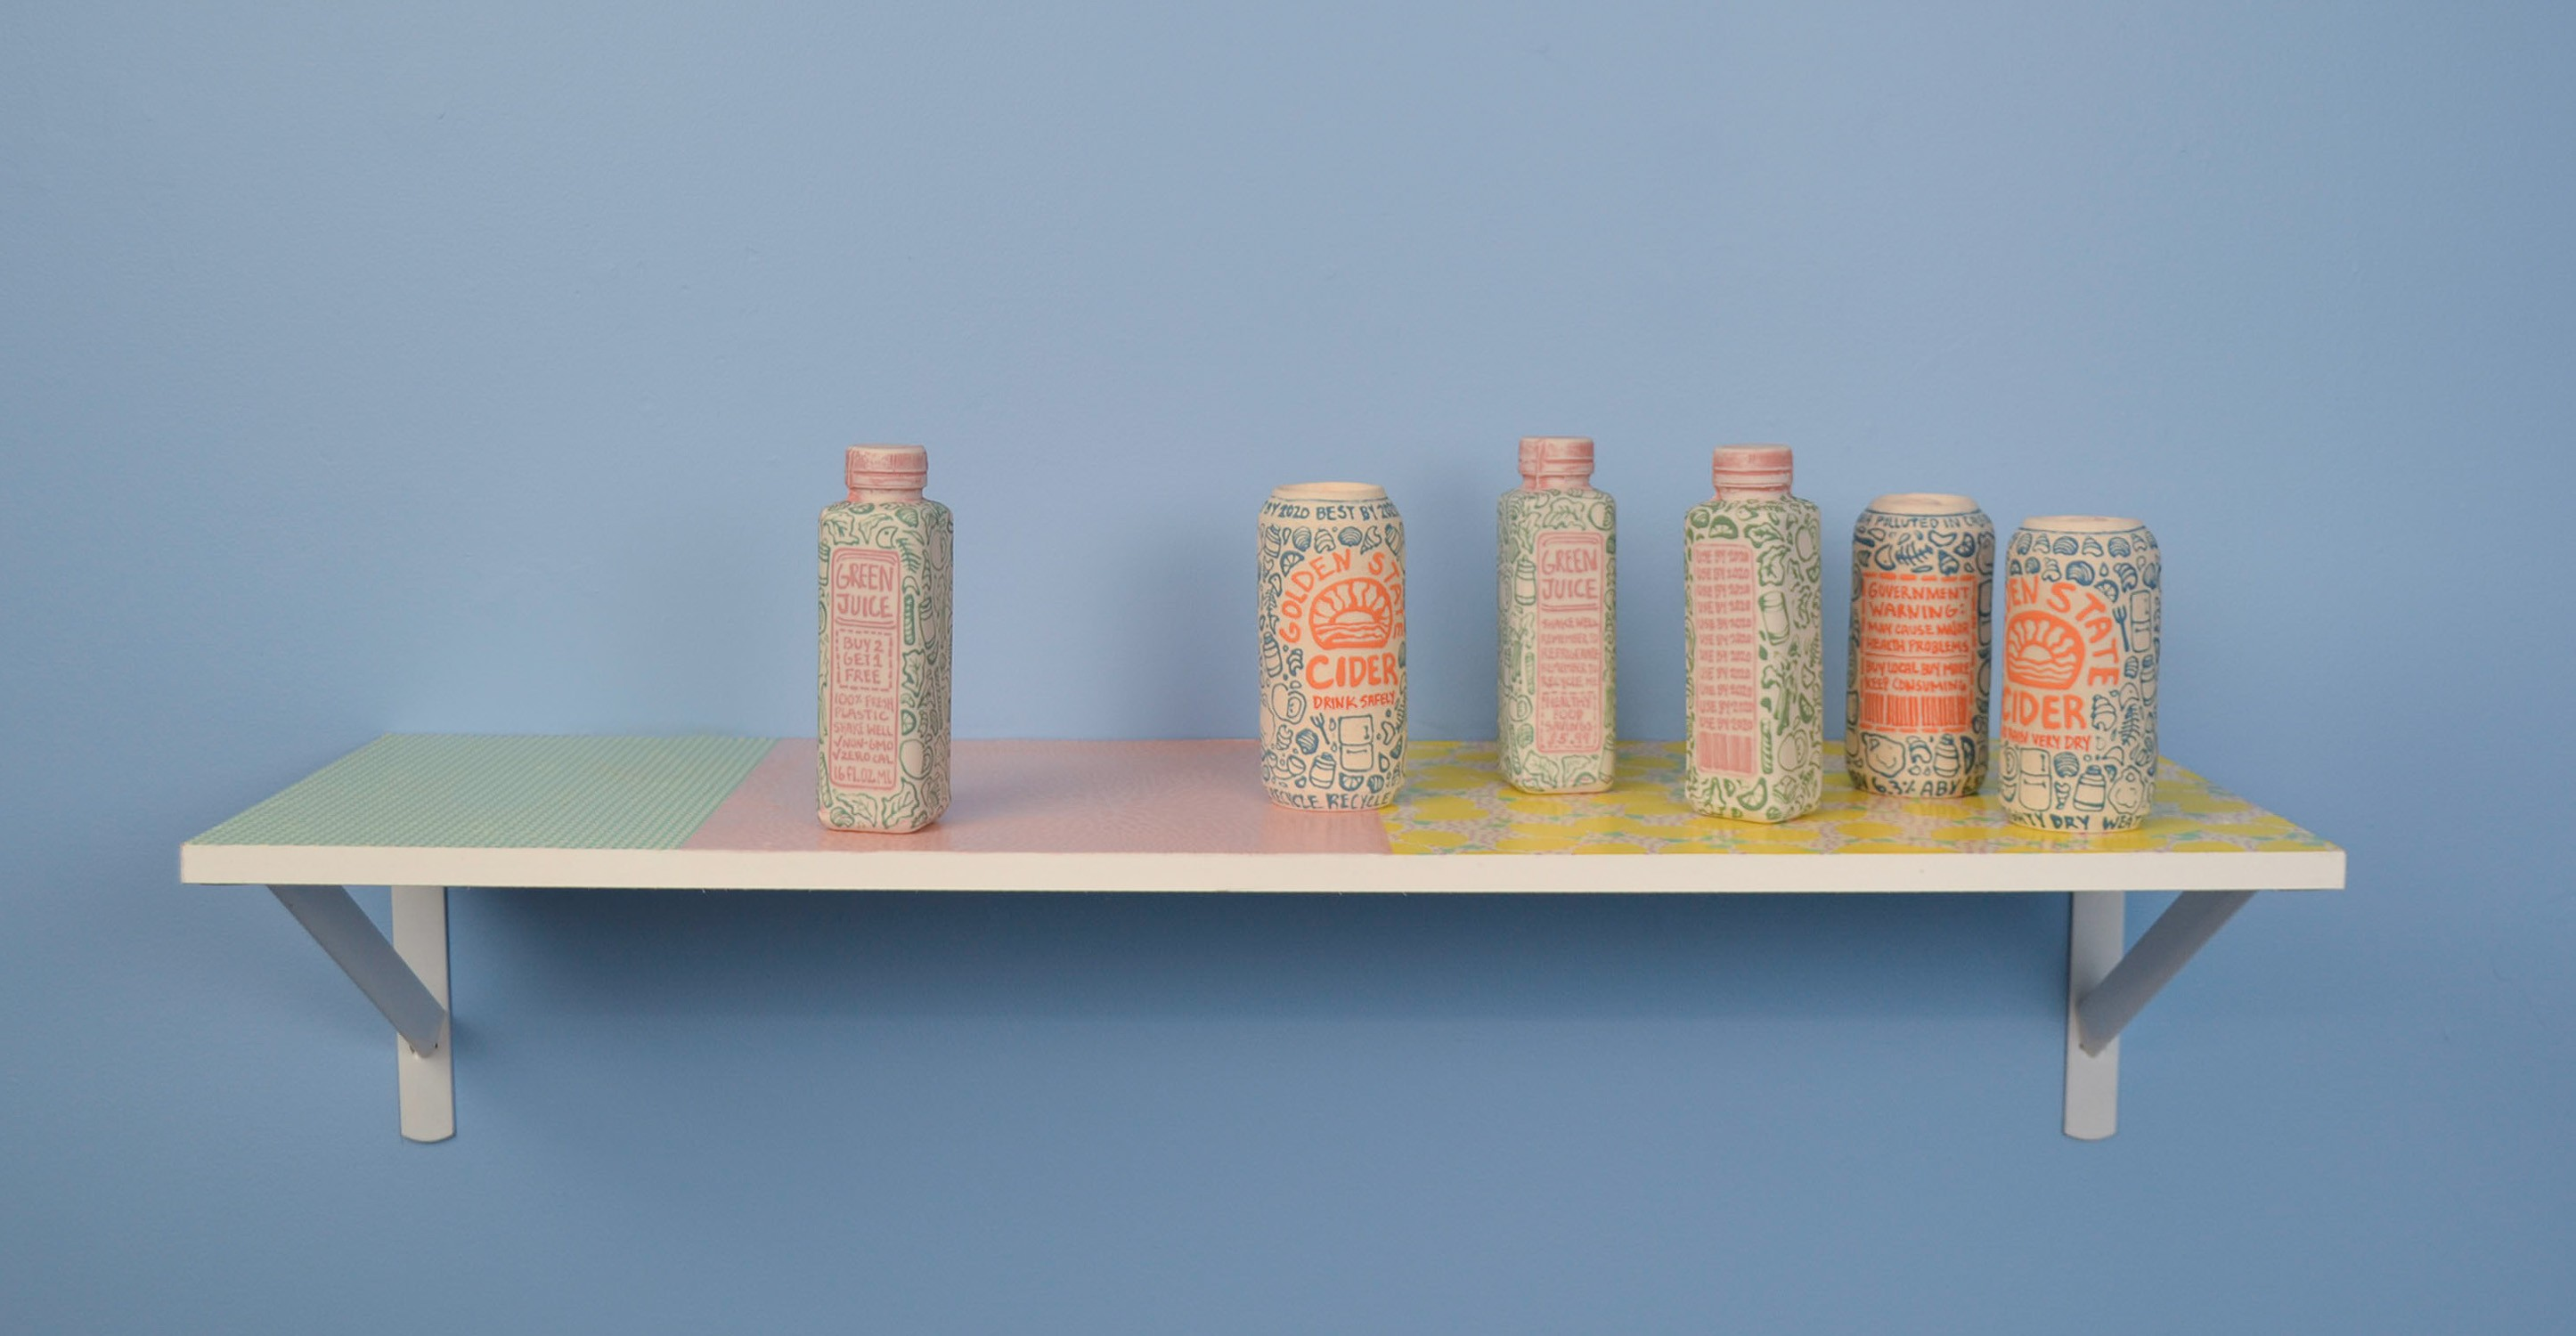 Full view of a shelf holding ceramic objects on a sky-blue wall. The objects, from left to right, are a bottle, a can, a bottle, a bottle, a can, and a can. The ceramic bottles are in the shape of rectangular bottles. The ceramic cans are in the shape of